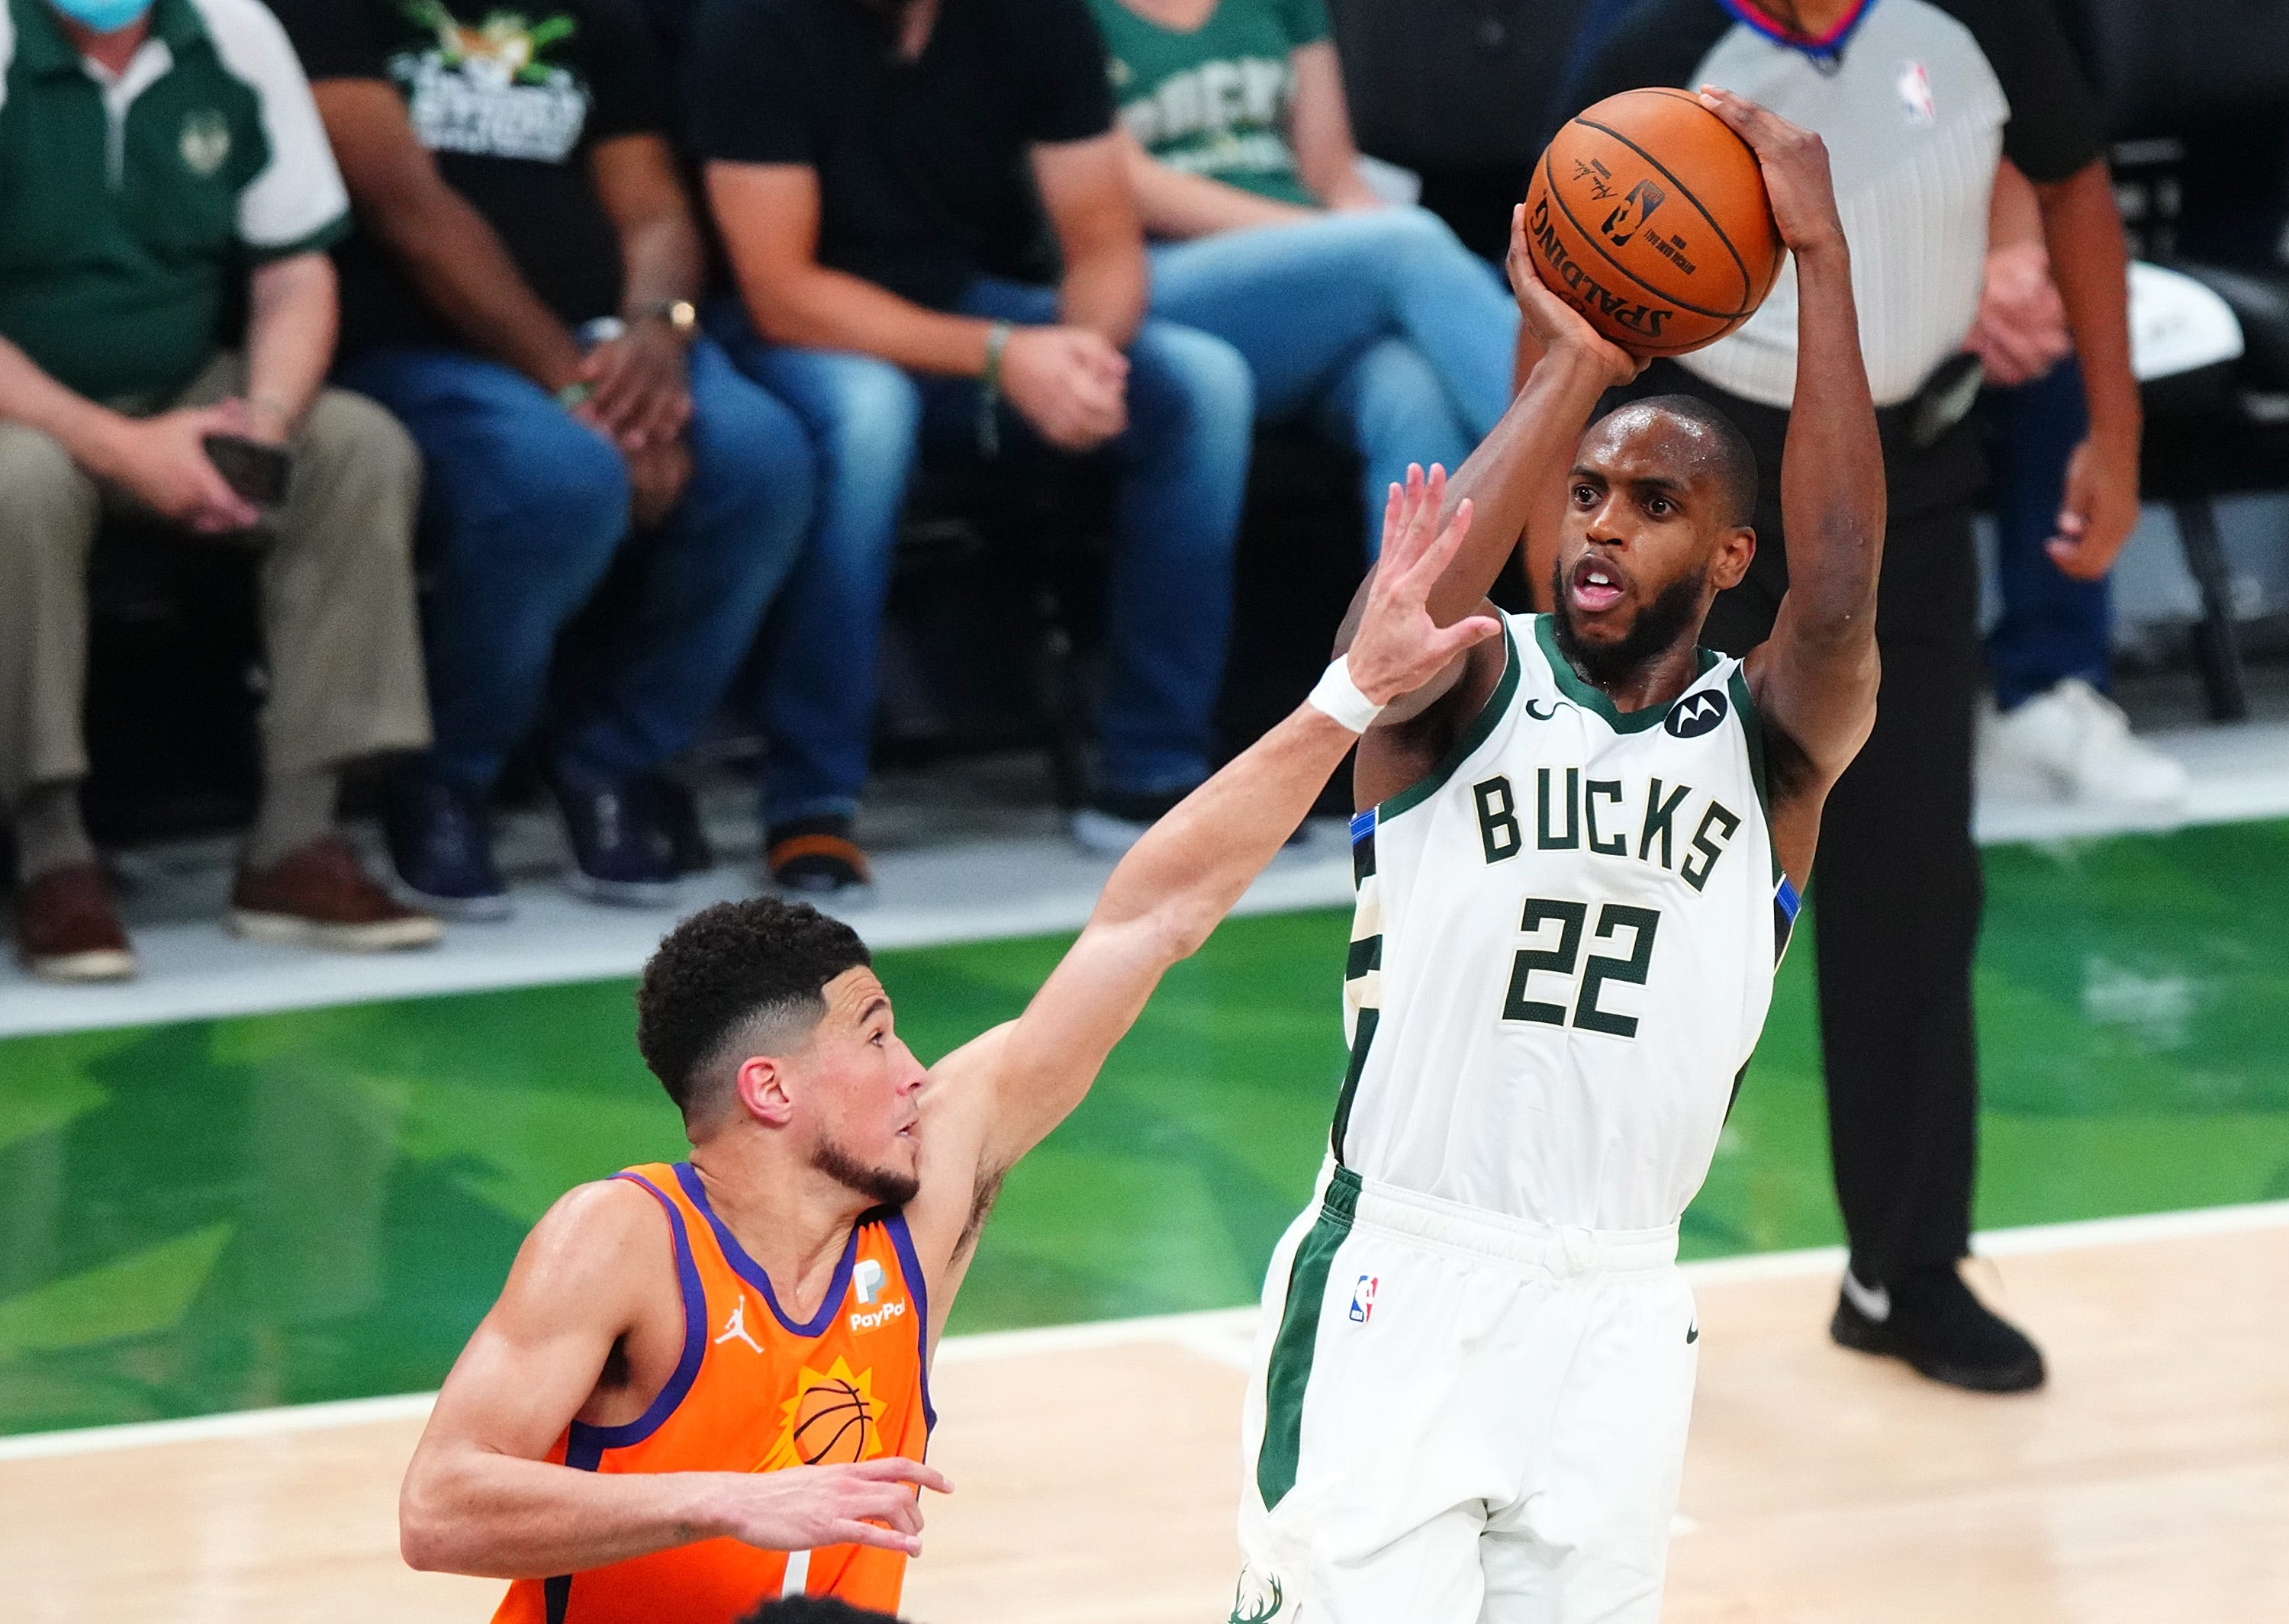 Bucks rally past Suns in Game 4 thriller to even NBA Finals at 2-2